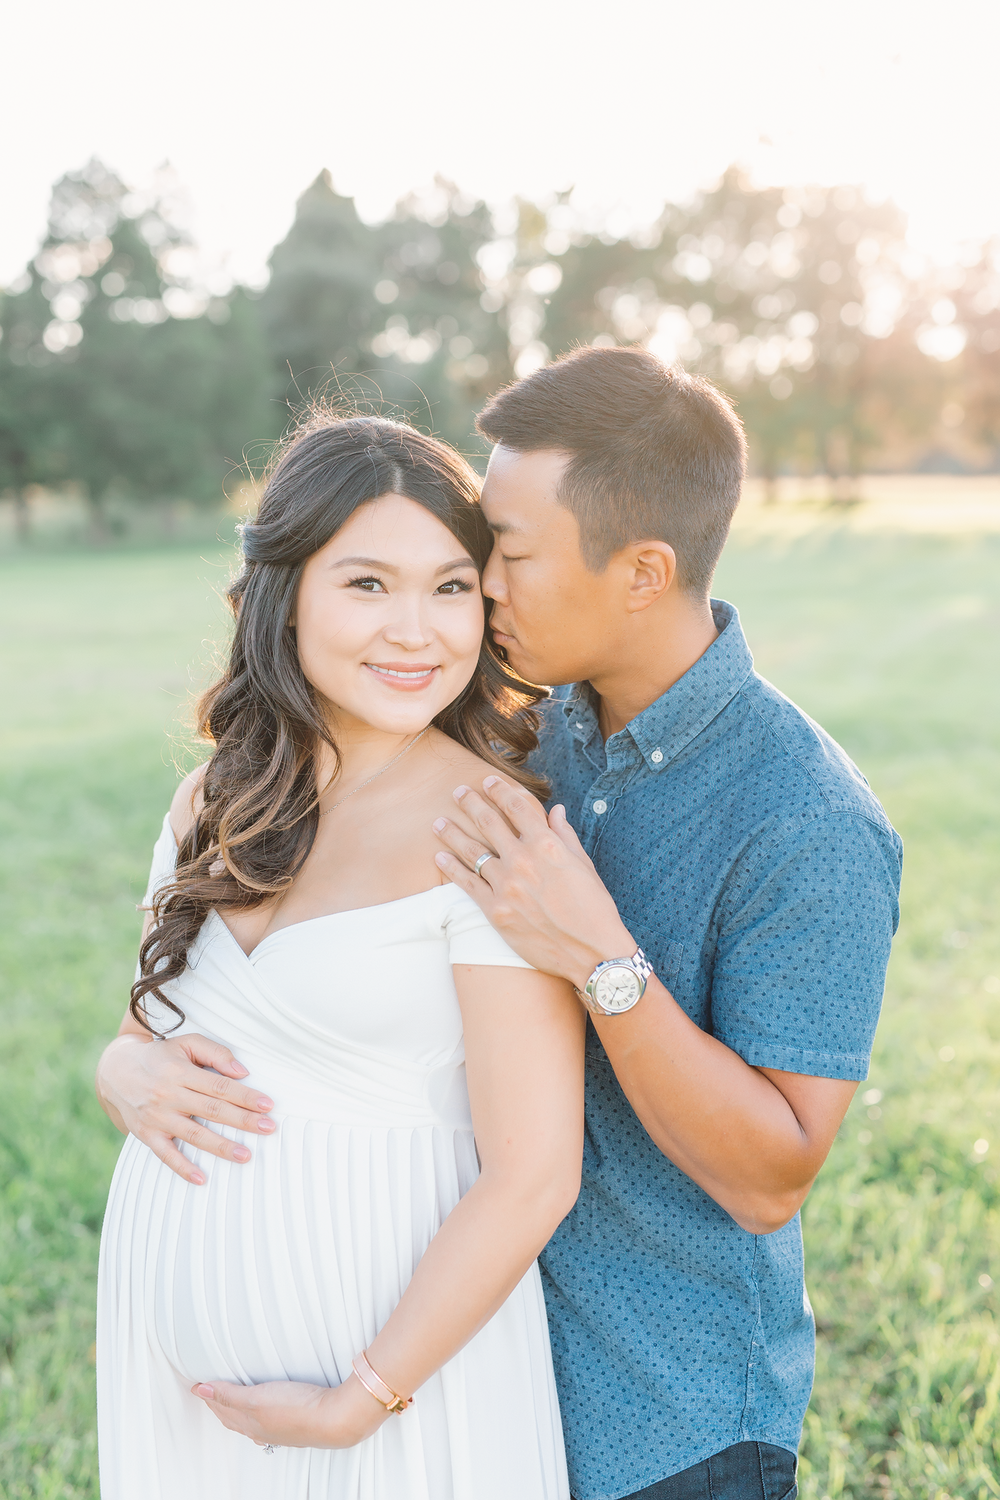 northern-virginia-maternity-photographer-10.png